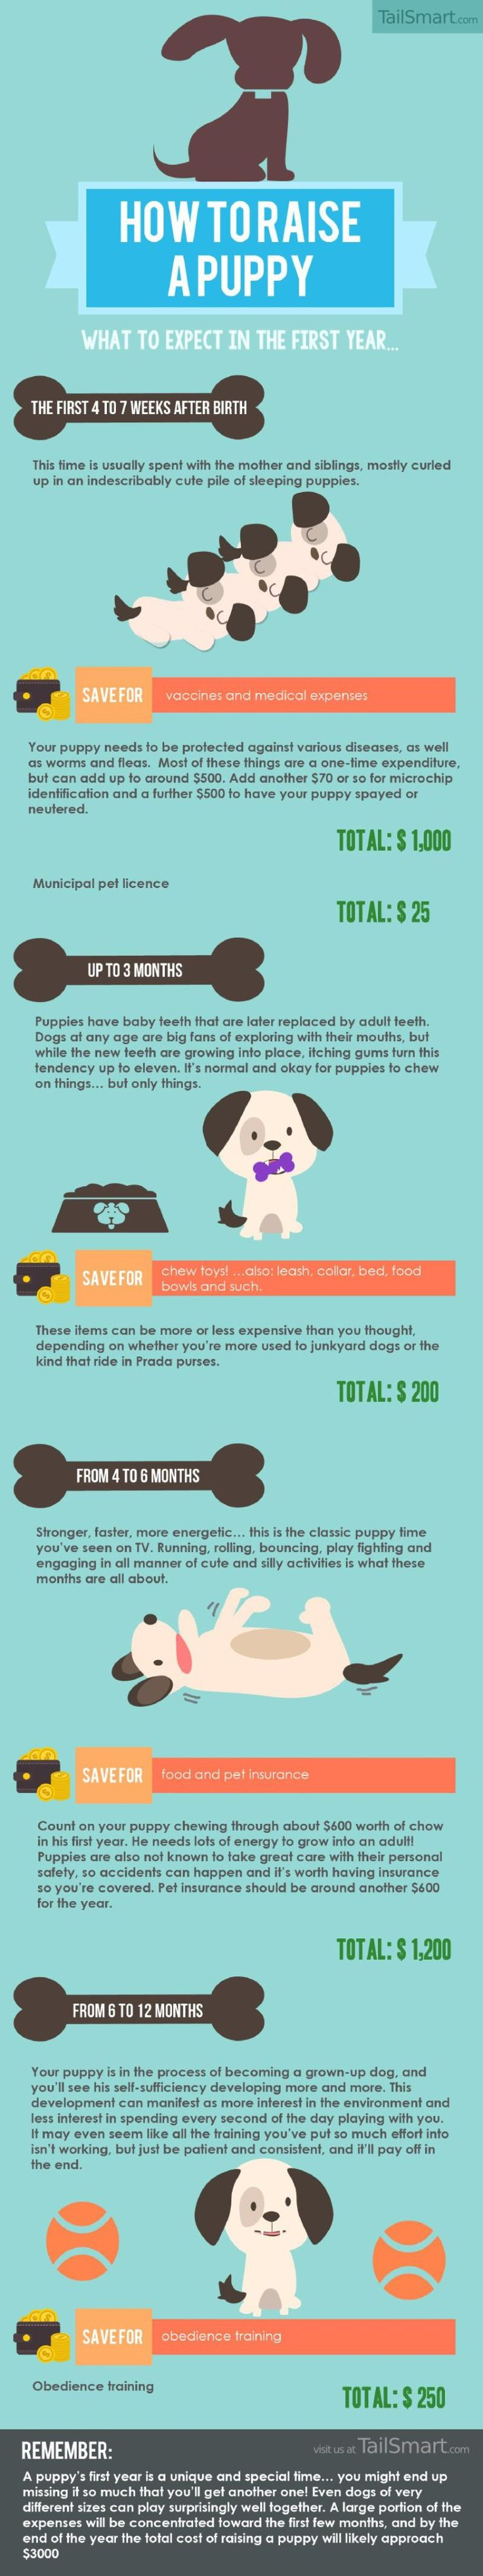 Raising A Puppy What to expect The First Year Infographic